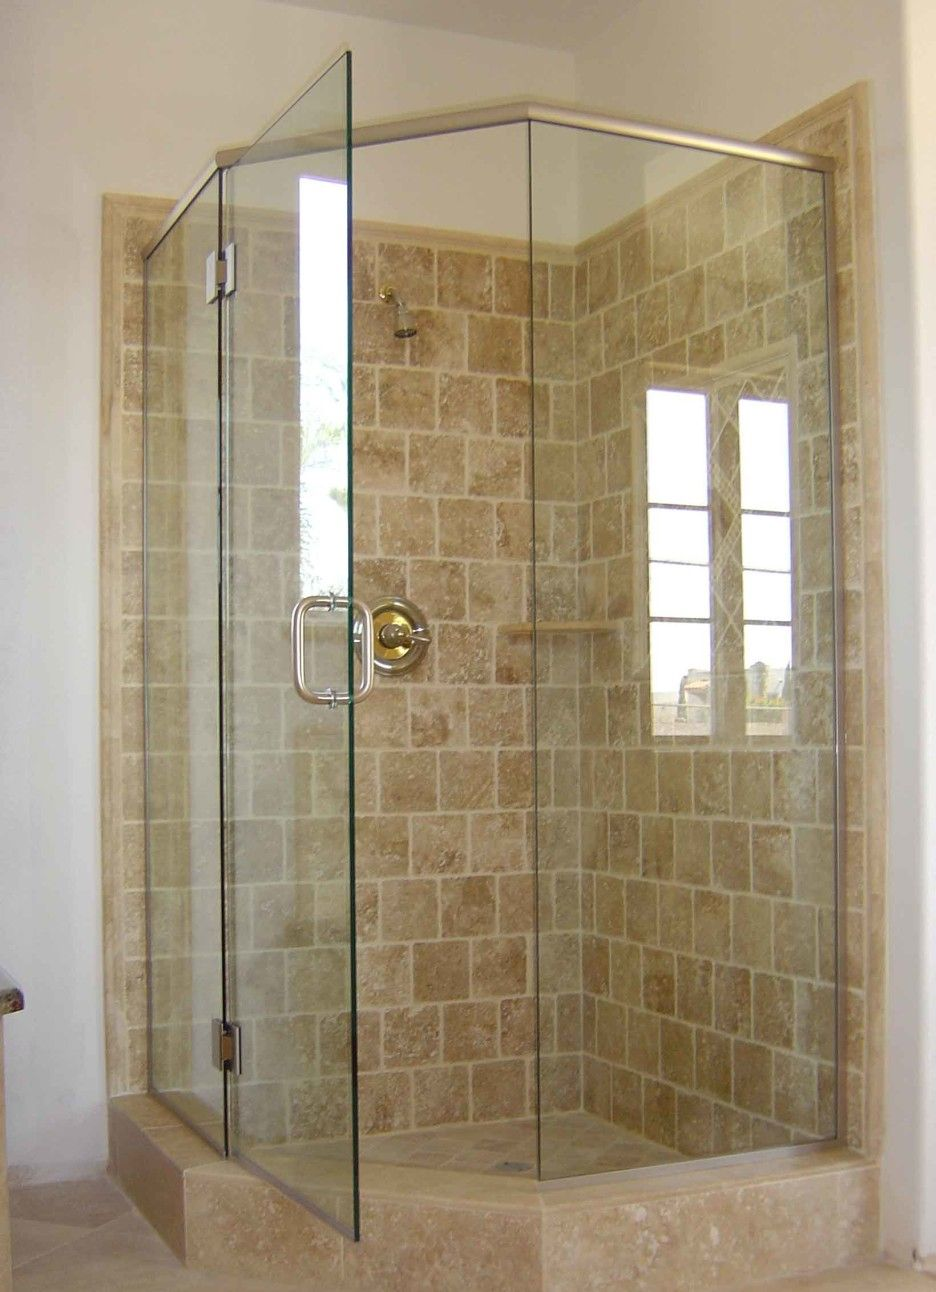 Bathroom. curved shape glass shower stall with metal door handle and ...